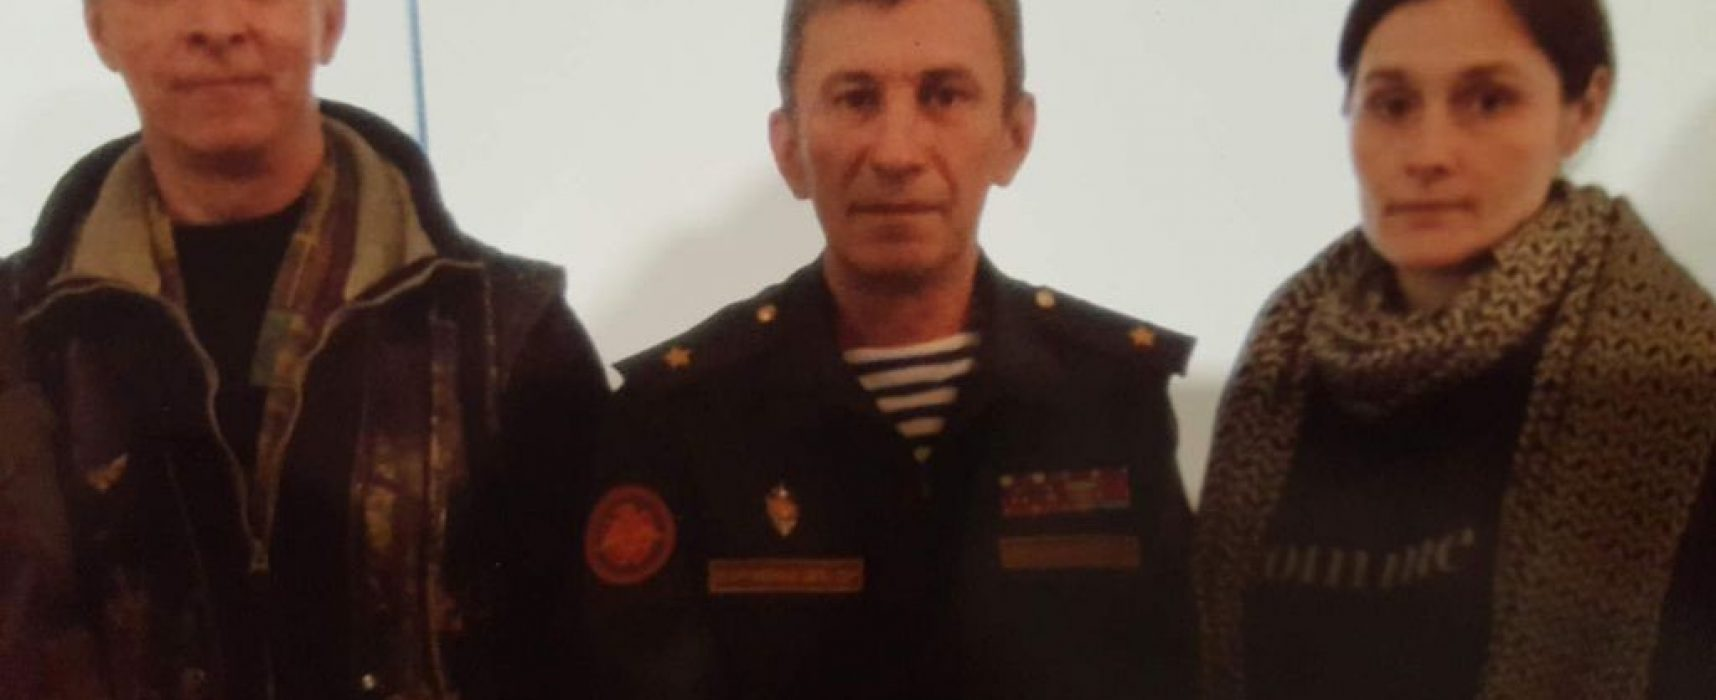 The Role of Sergey Dubinsky in the Downing of MH17